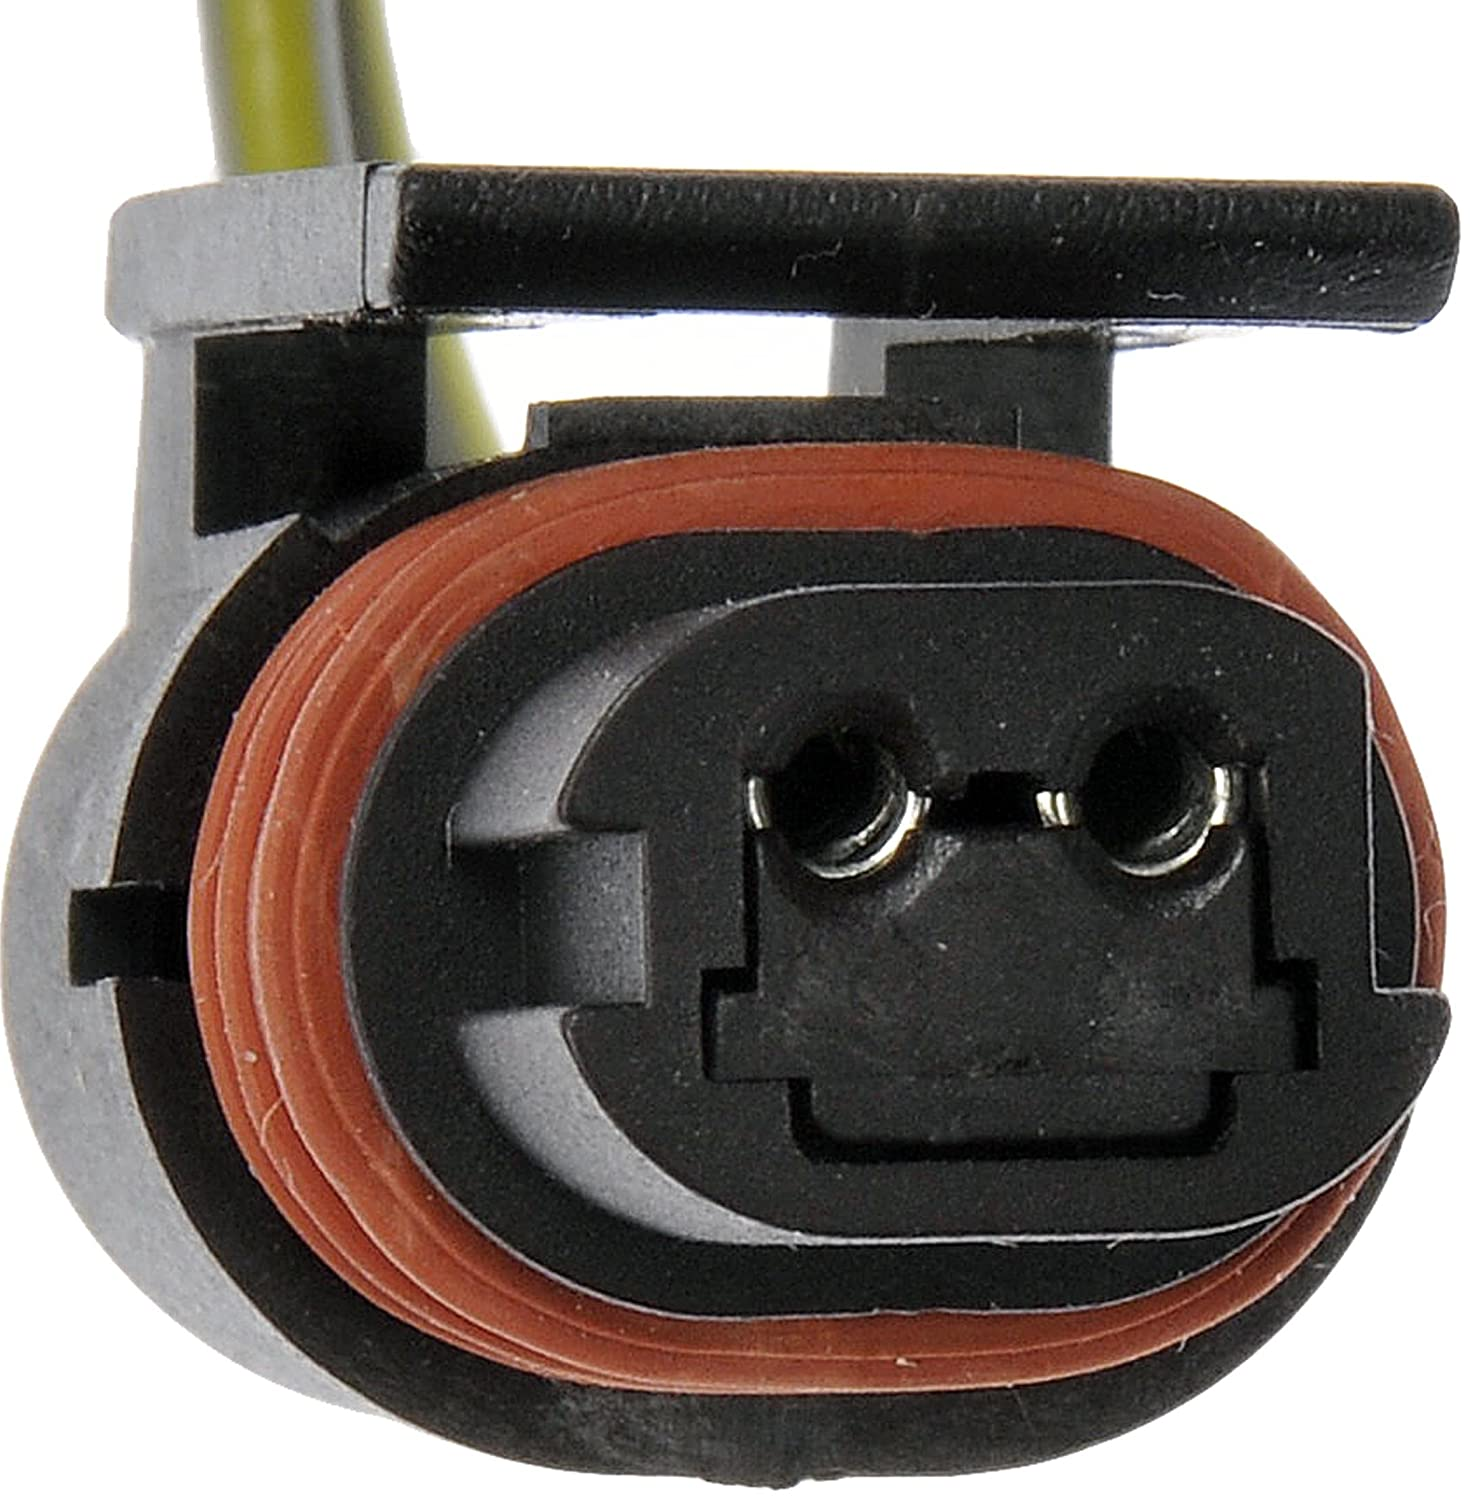 Dorman 645-748 License Plate Lamp Socket and Harness Assembly